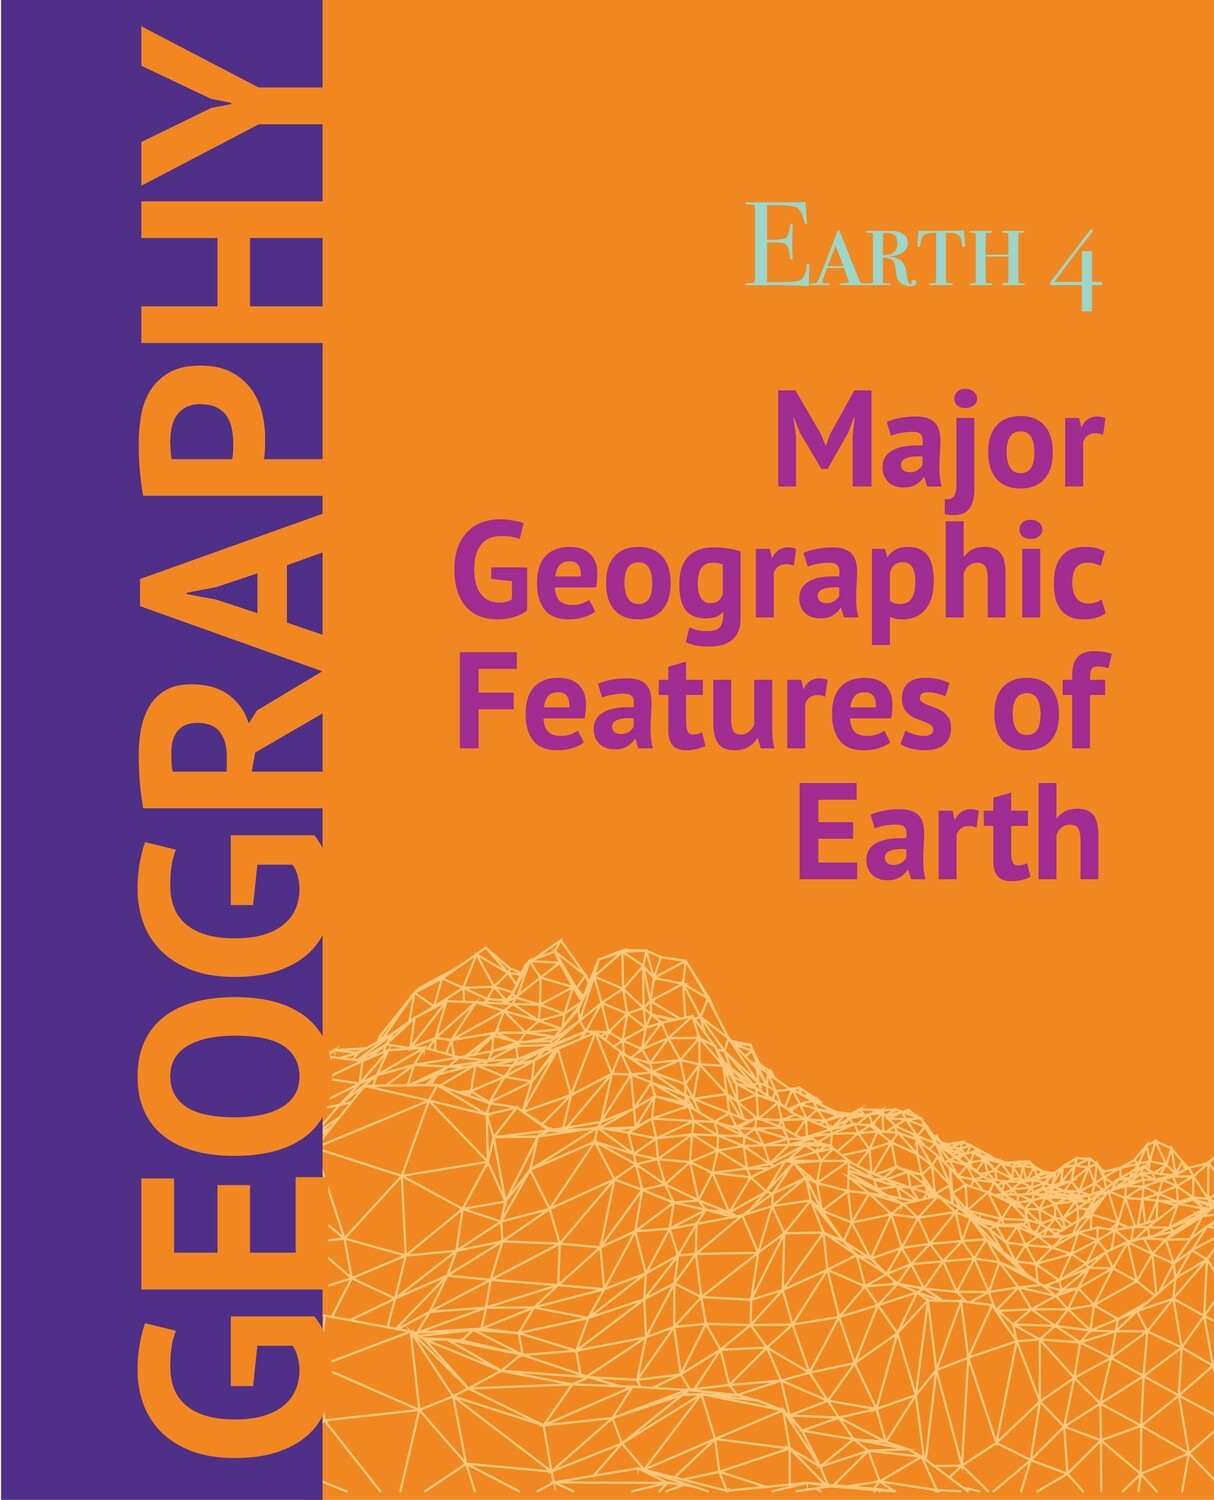 Earth 4 - Major Geographic Features of Earth